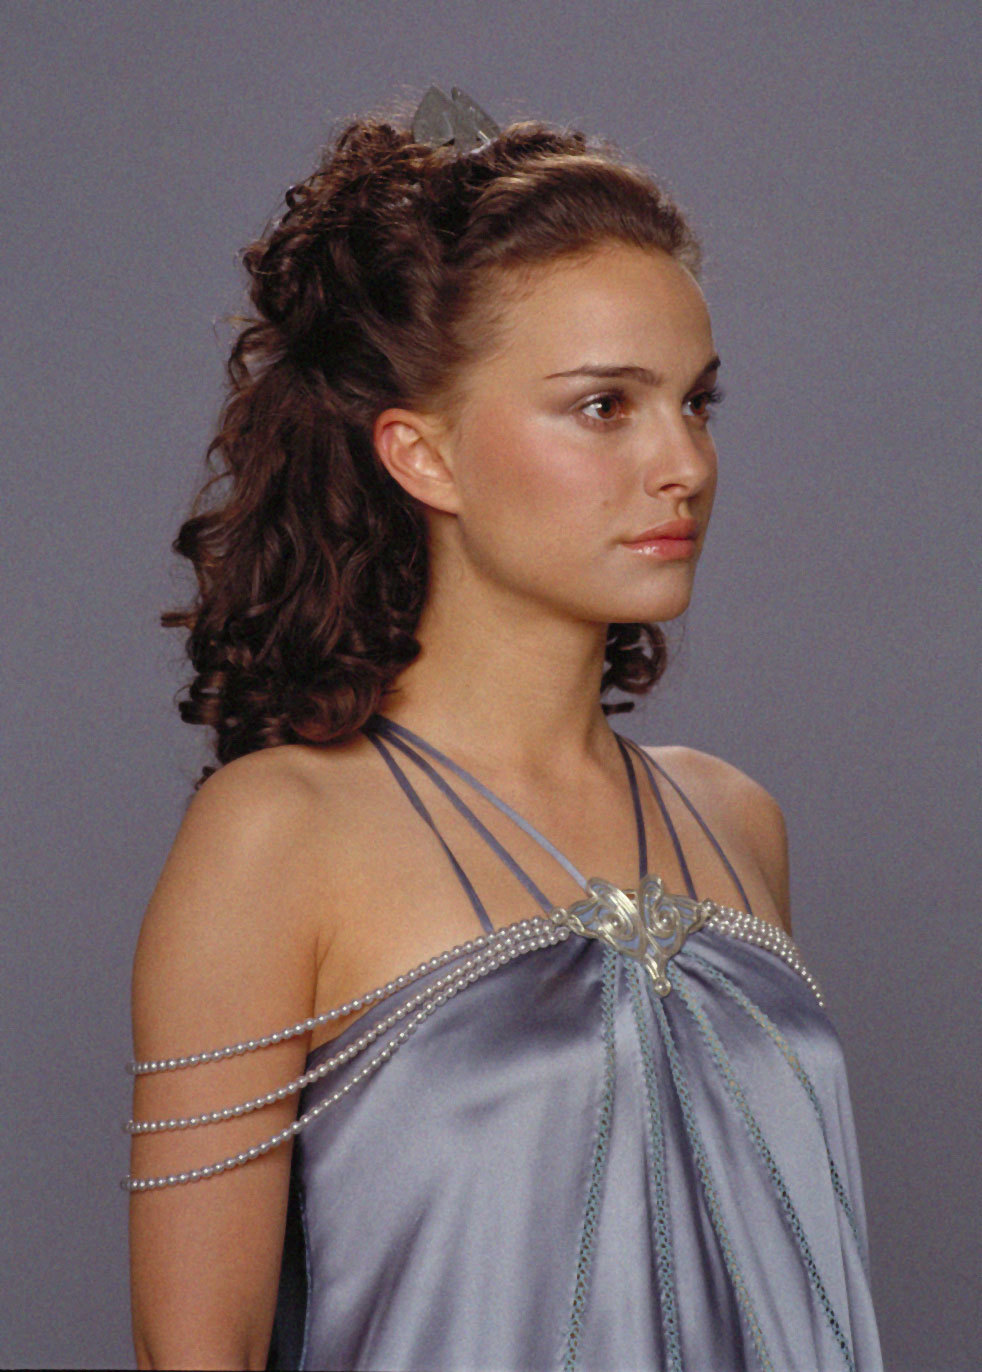 Episode Iii What S Your Favourite Outfit Poll Results